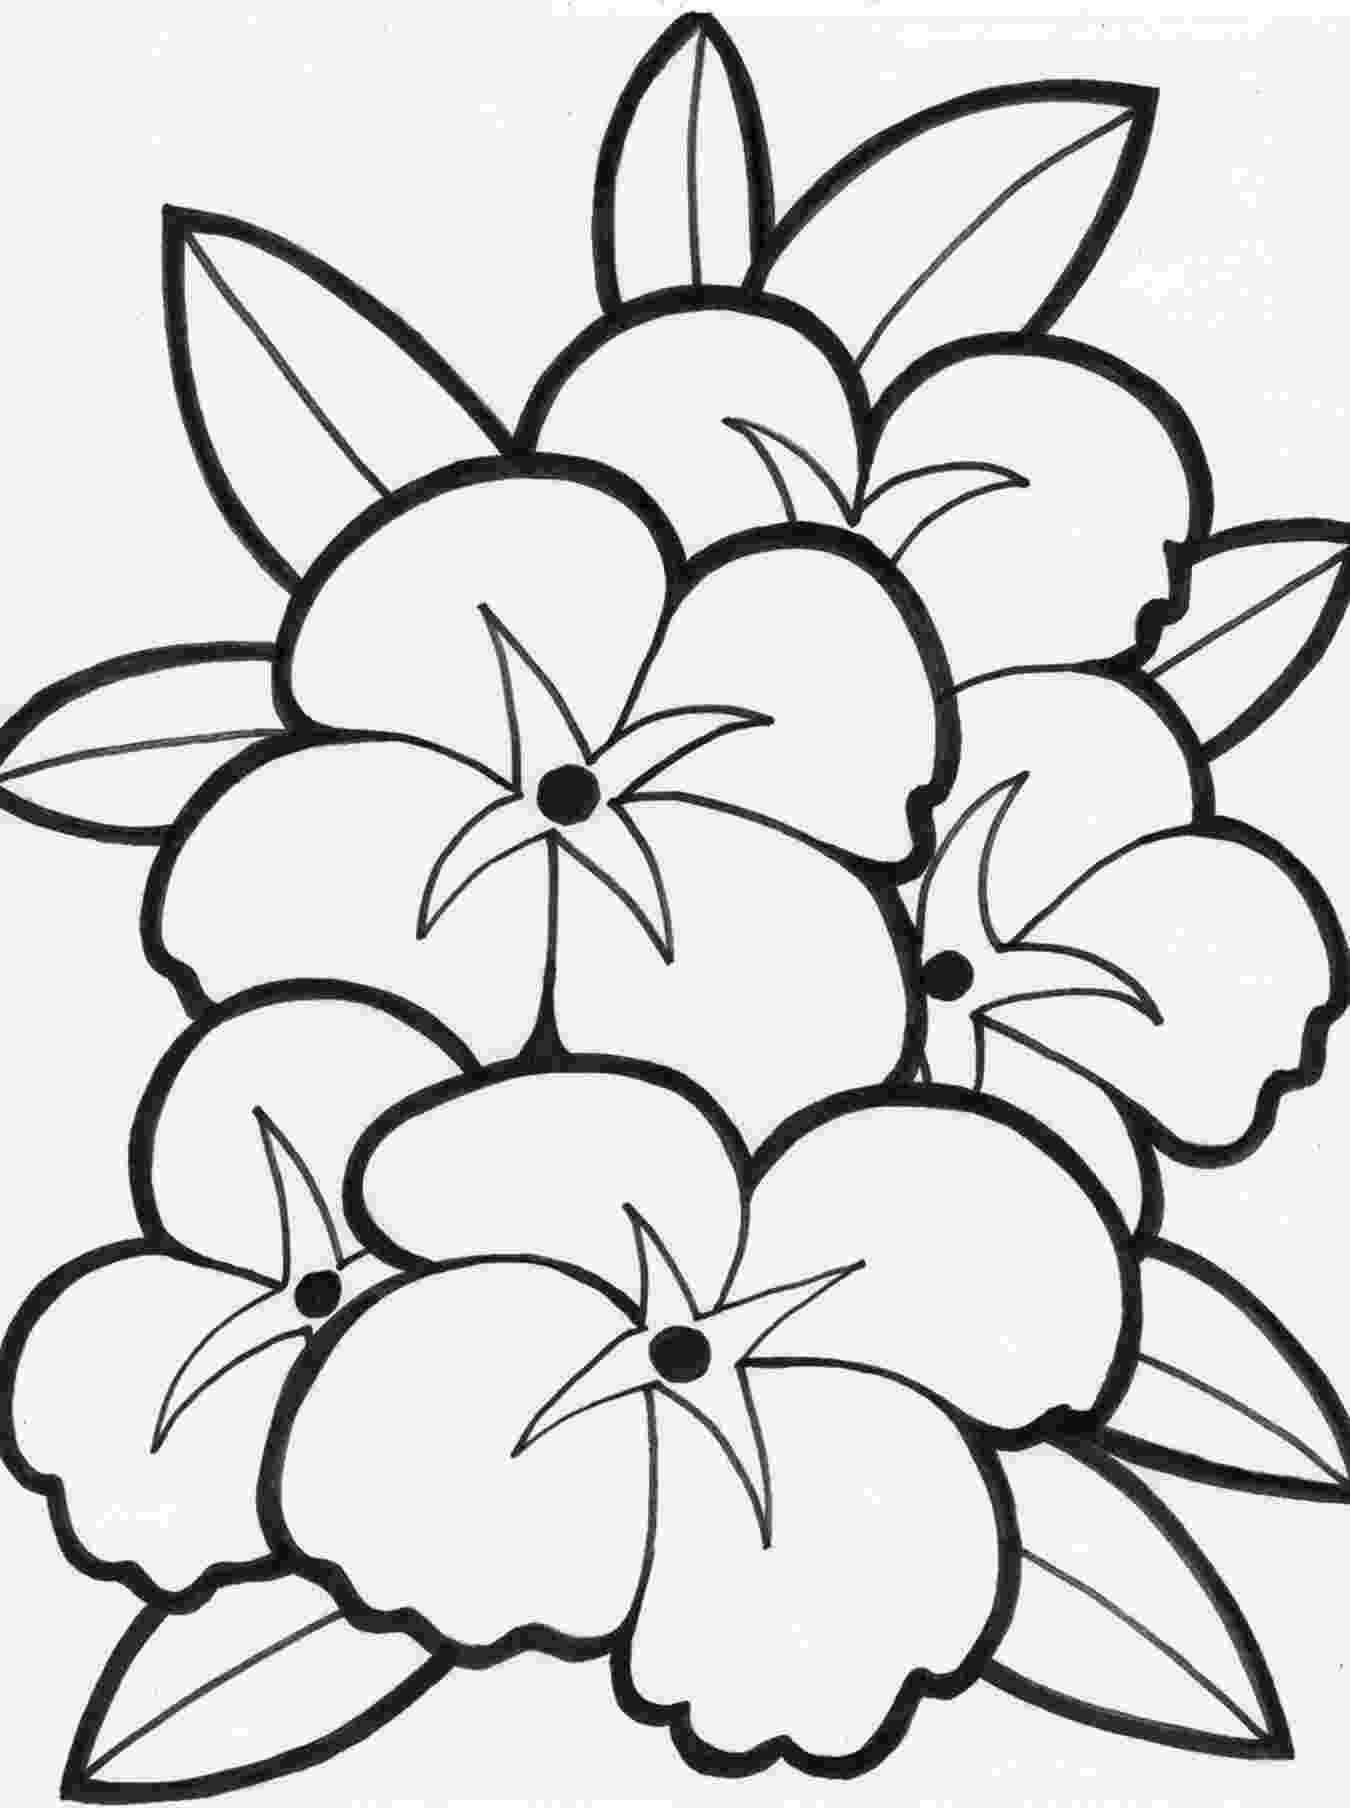 pictures of flowers to print and color free printable flower coloring pages for kids best flowers of to and color print pictures